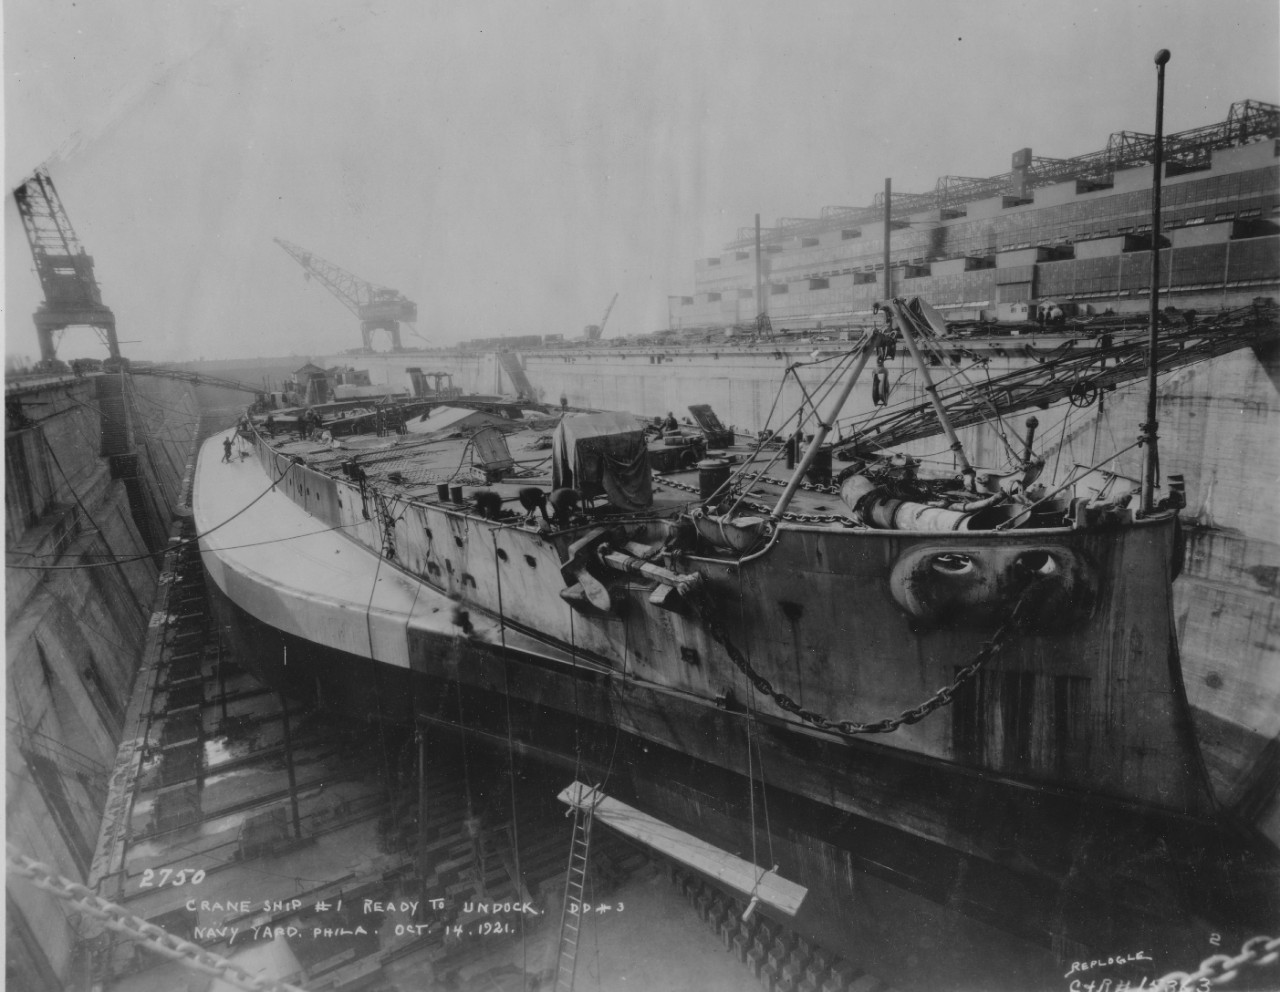 Stripped of turrets, superstructure, and armor, Crane Ship No. 1 is prepared for undocking from Dry Dock No. 3 at the Philadelphia Navy Yard, 14 October 1921. (U.S. Navy Bureau of Ships Photograph 19-N-15363, National Archives and Records Administration, Still Pictures Division, College Park, Md.)